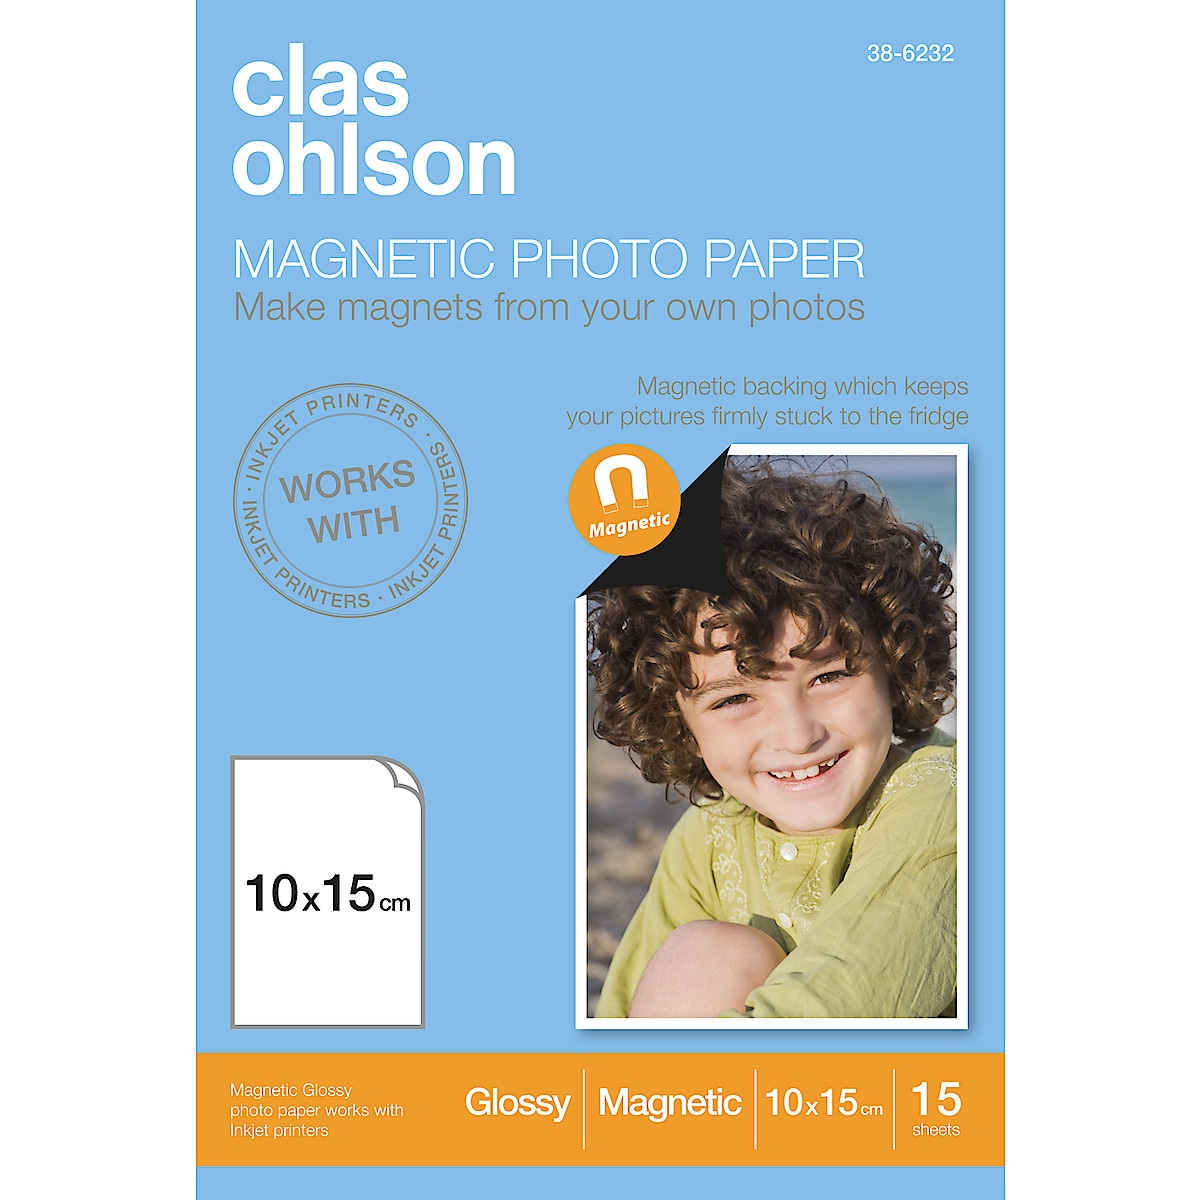 Clas Ohlson Magnetic Photo Paper